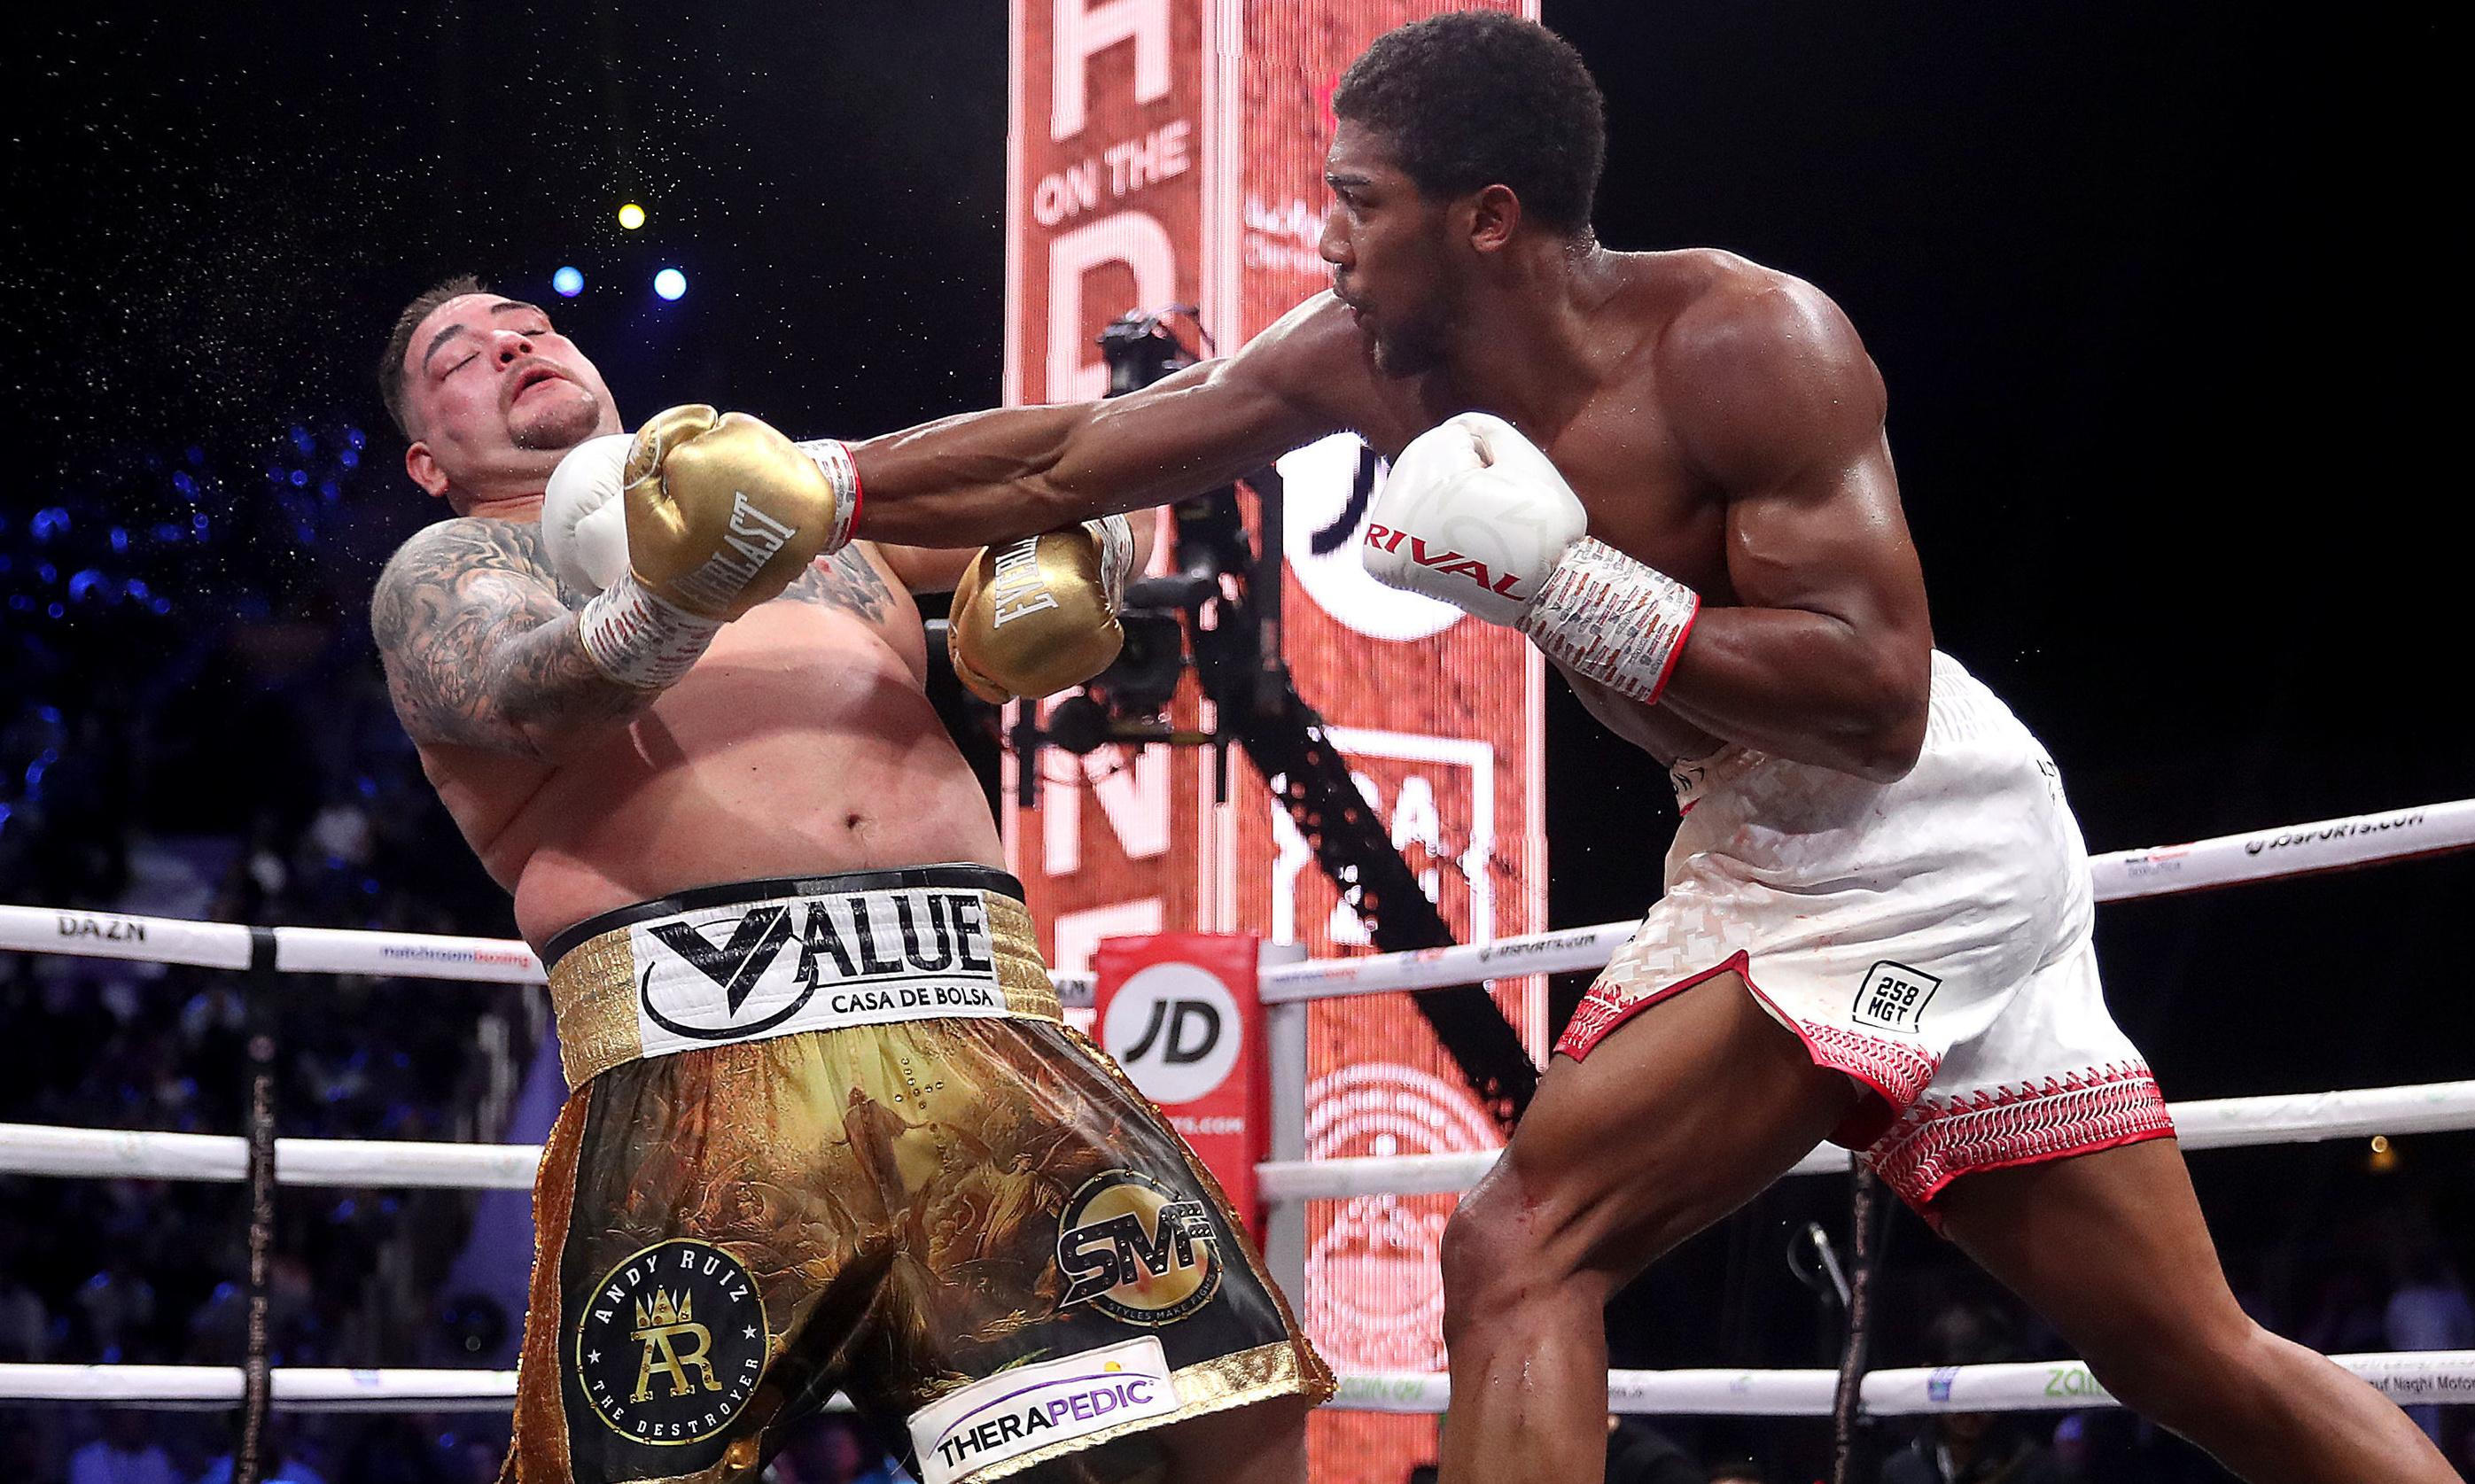 Anthony Joshua outfoxes Andy Ruiz Jr to dance back into boxing's big time